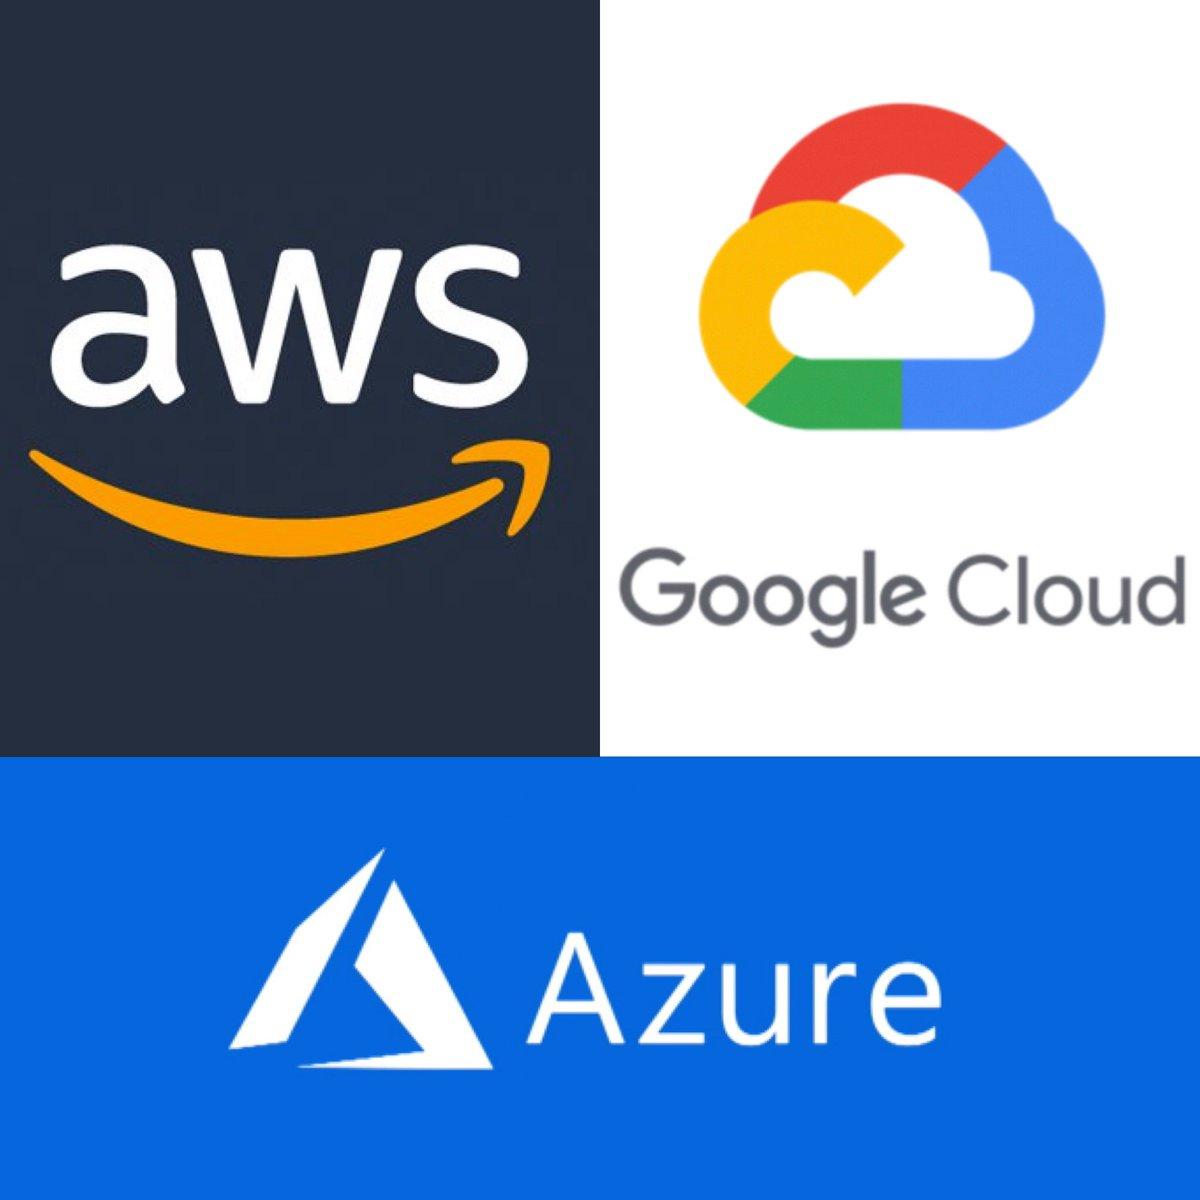 So which one of the big 3 in #cloud #computing do you use? or do you prefer another provider? We want to know. • • • • • #exo #exoplanet #itsupport #tech #technology #aws #googlecloud #linux #devops #programmer #code #coding #webdesign #webdevelopment #question #time